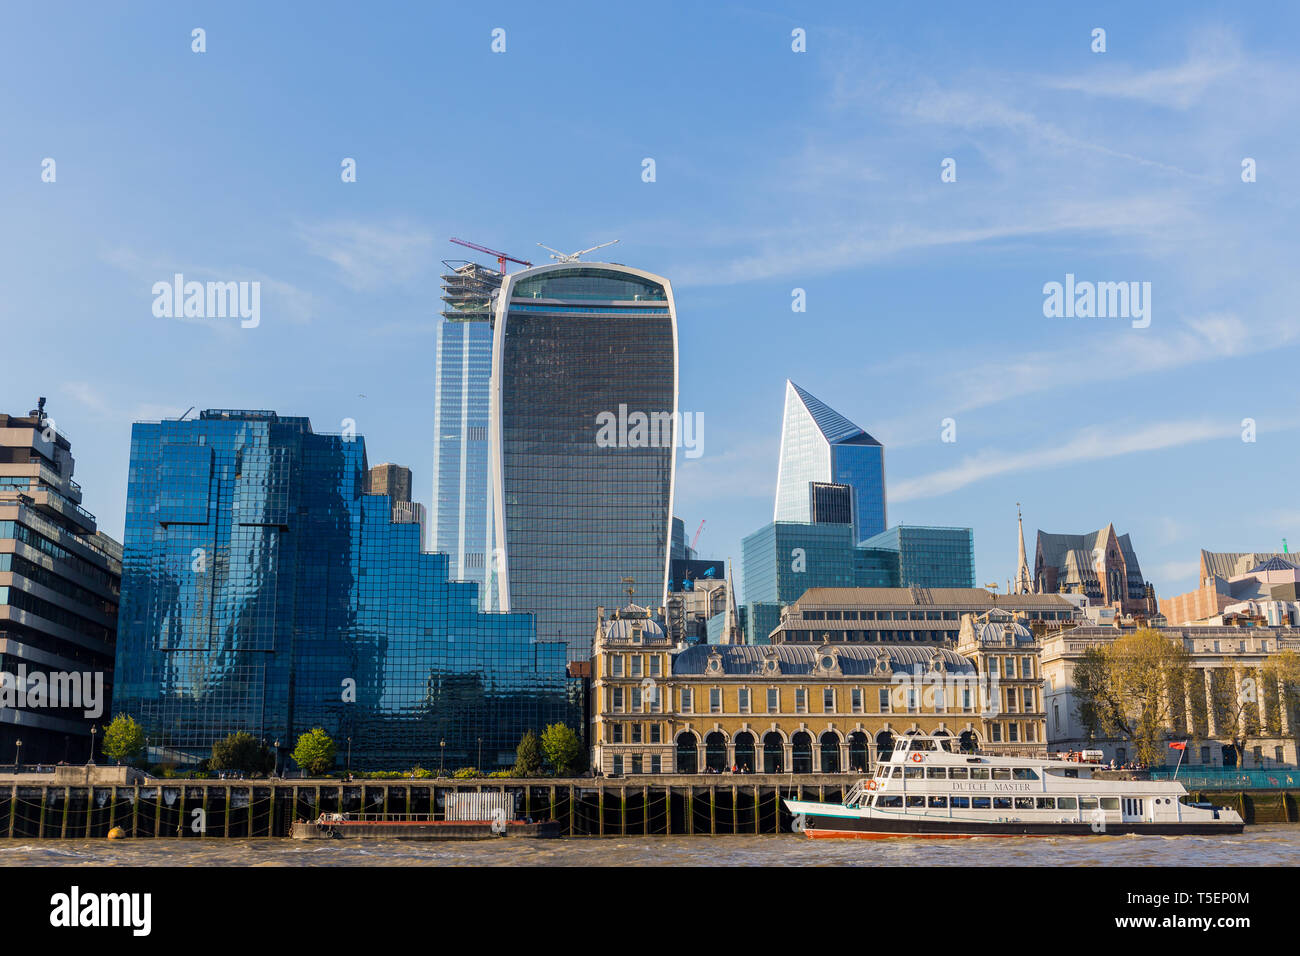 England - April 20, 2019 : Sky garden with Dutch Master bost on Thames River. - Stock Image